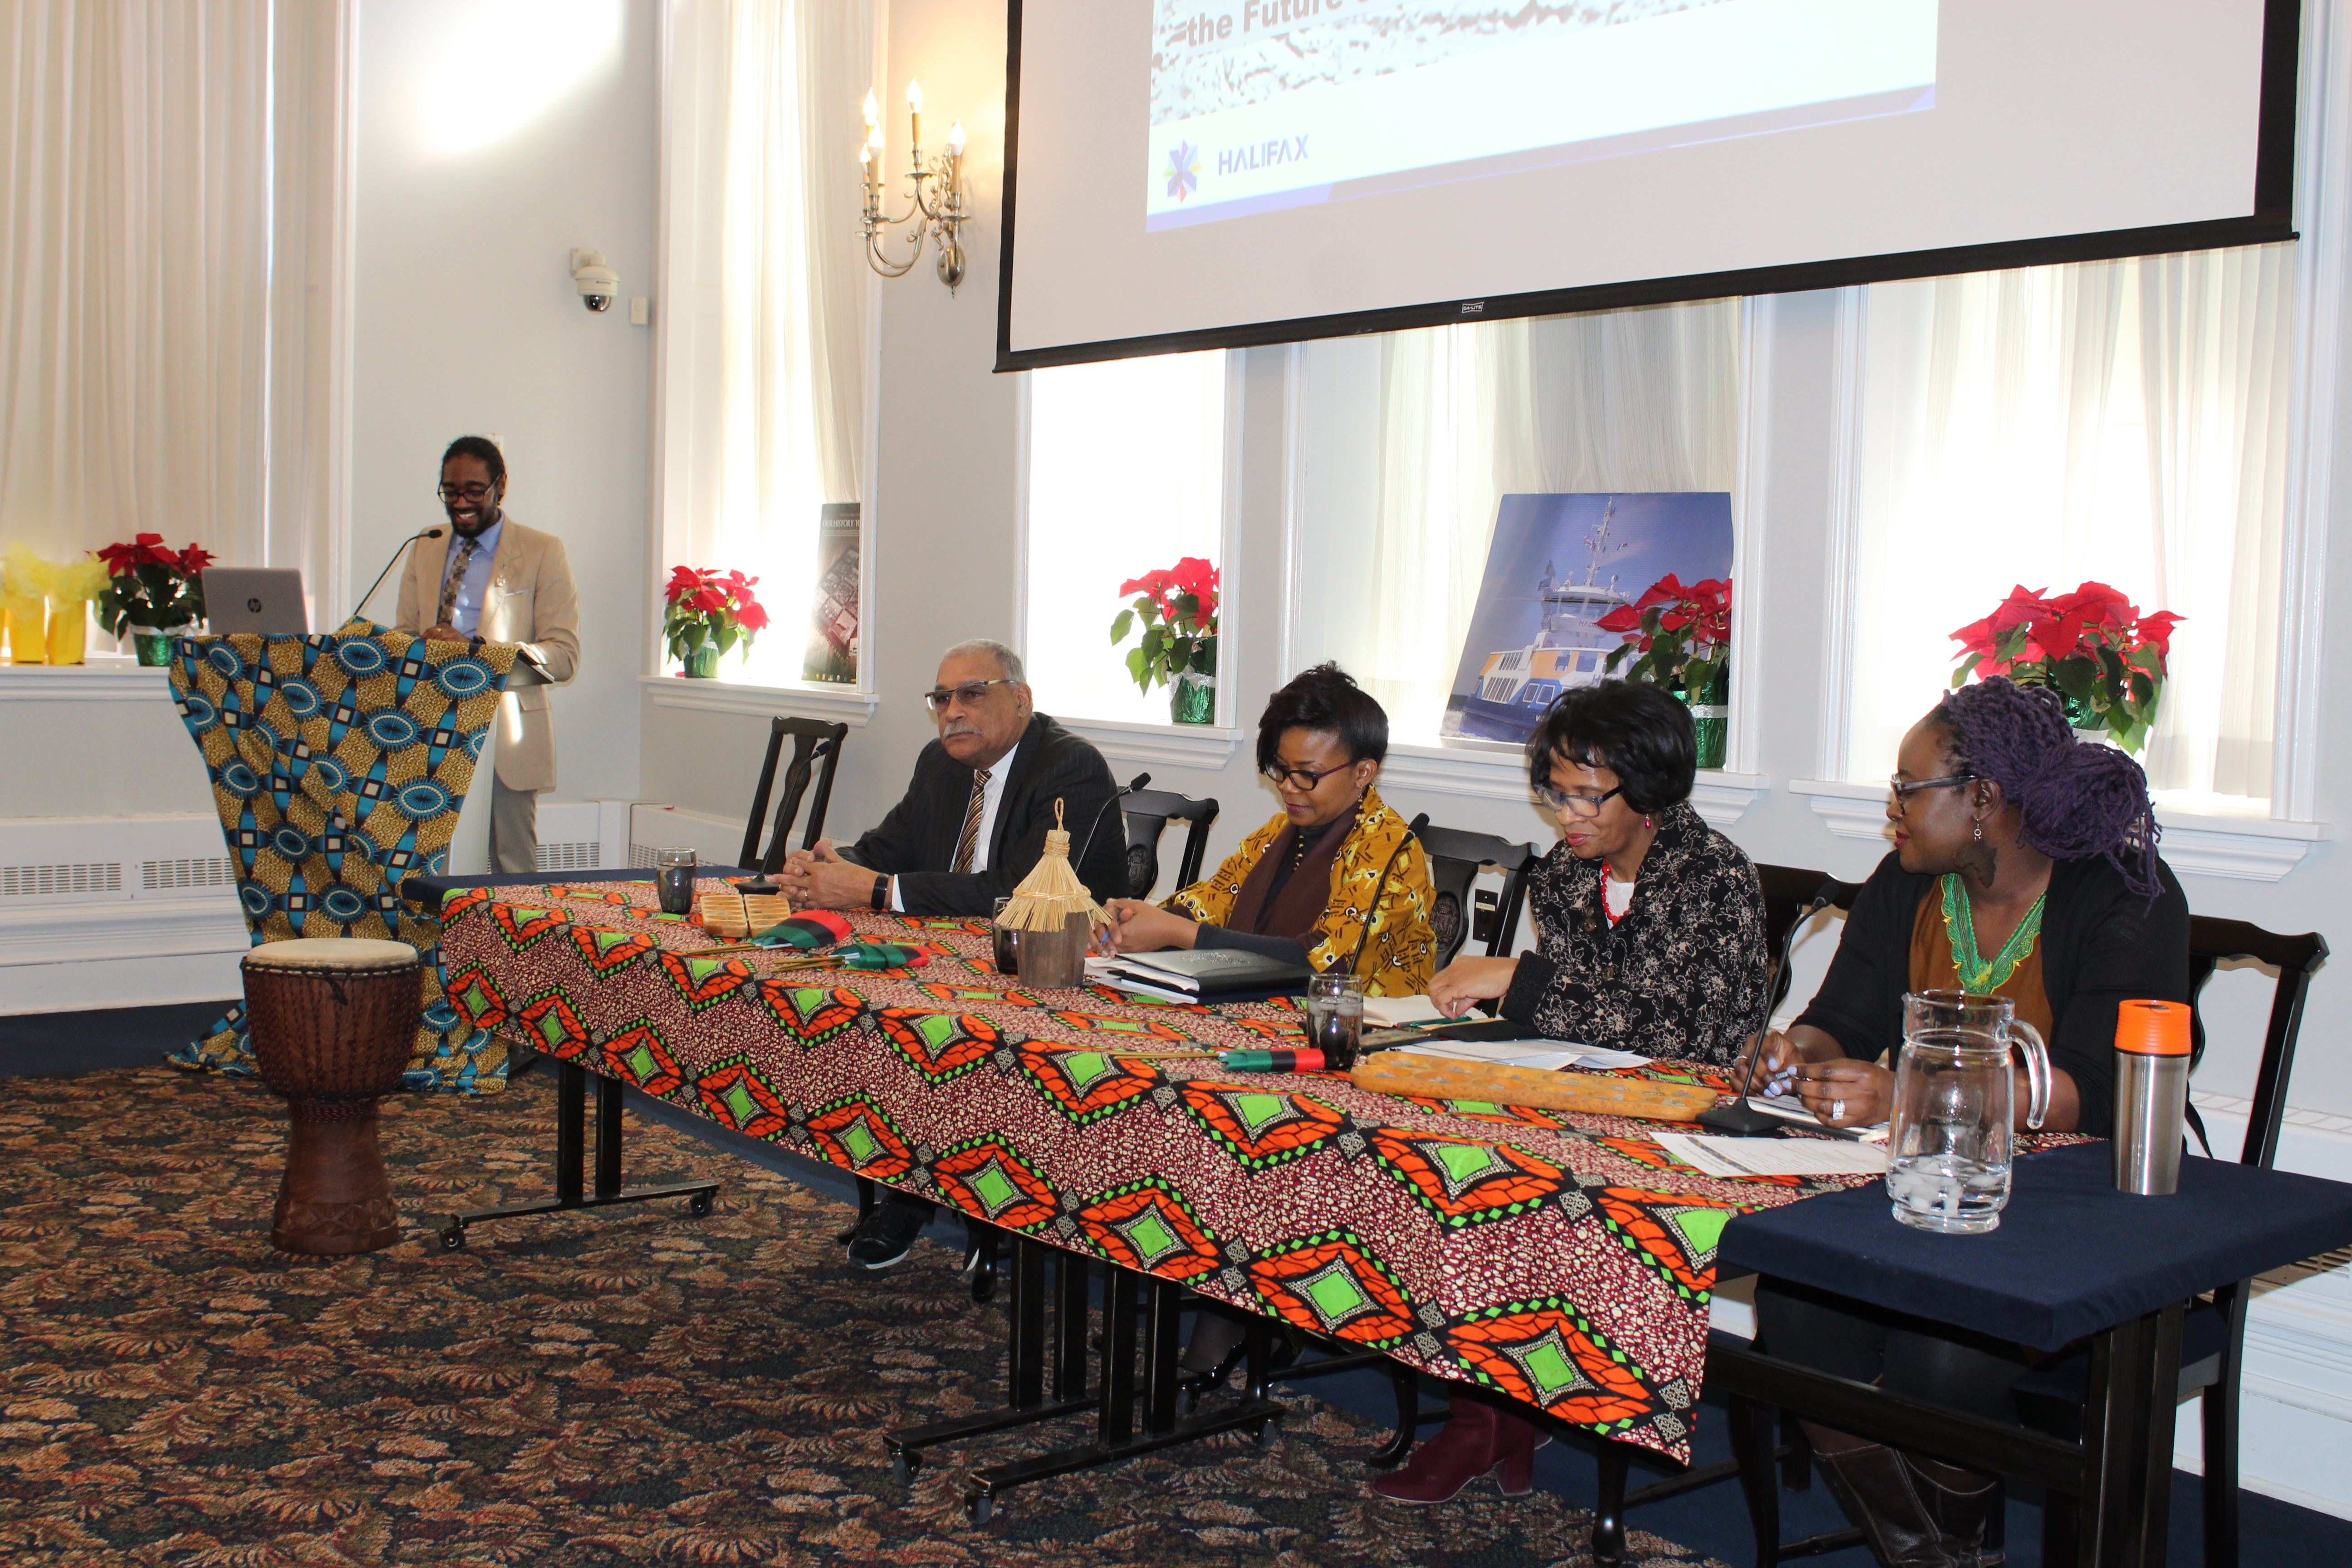 African Heritage Month 2019 - Race Relations, Black Experience and the Future of Municipal Government, Panel Discussion